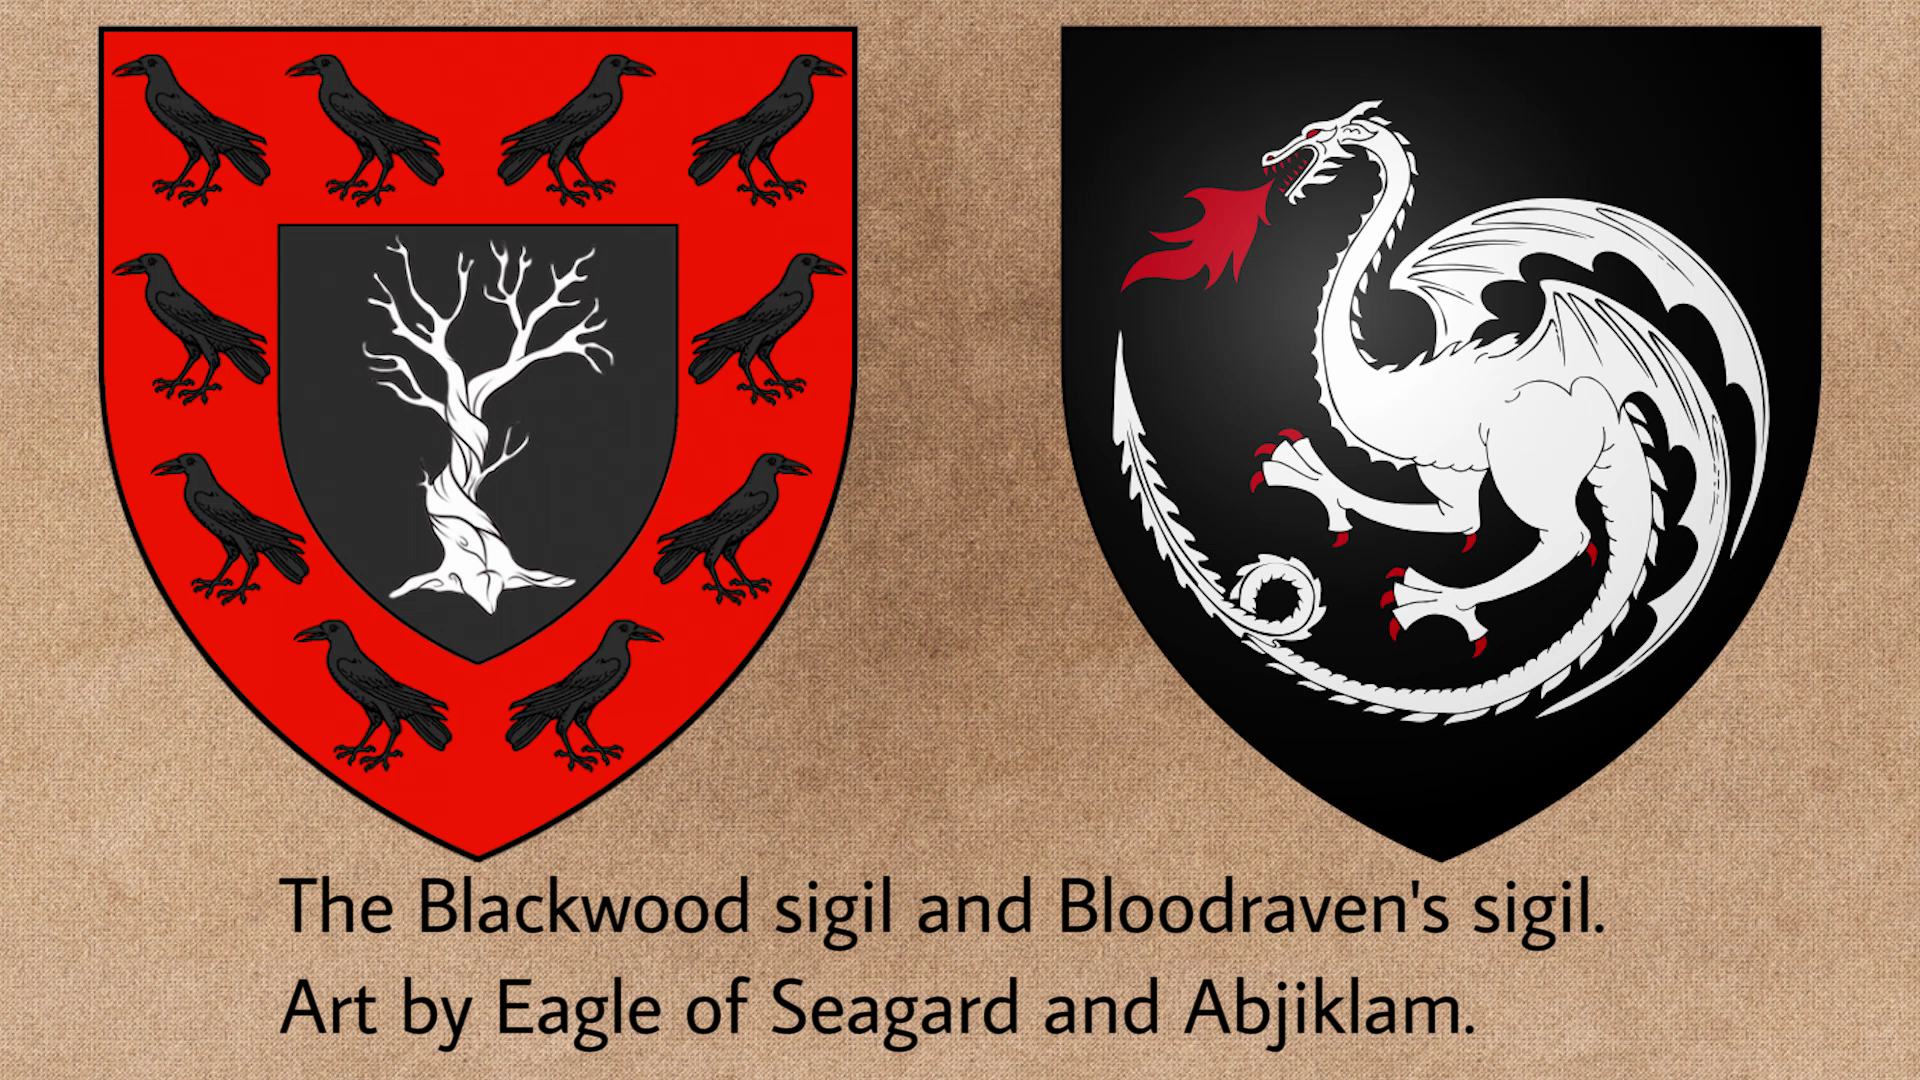 Abjiklam & Eagle of Seagard